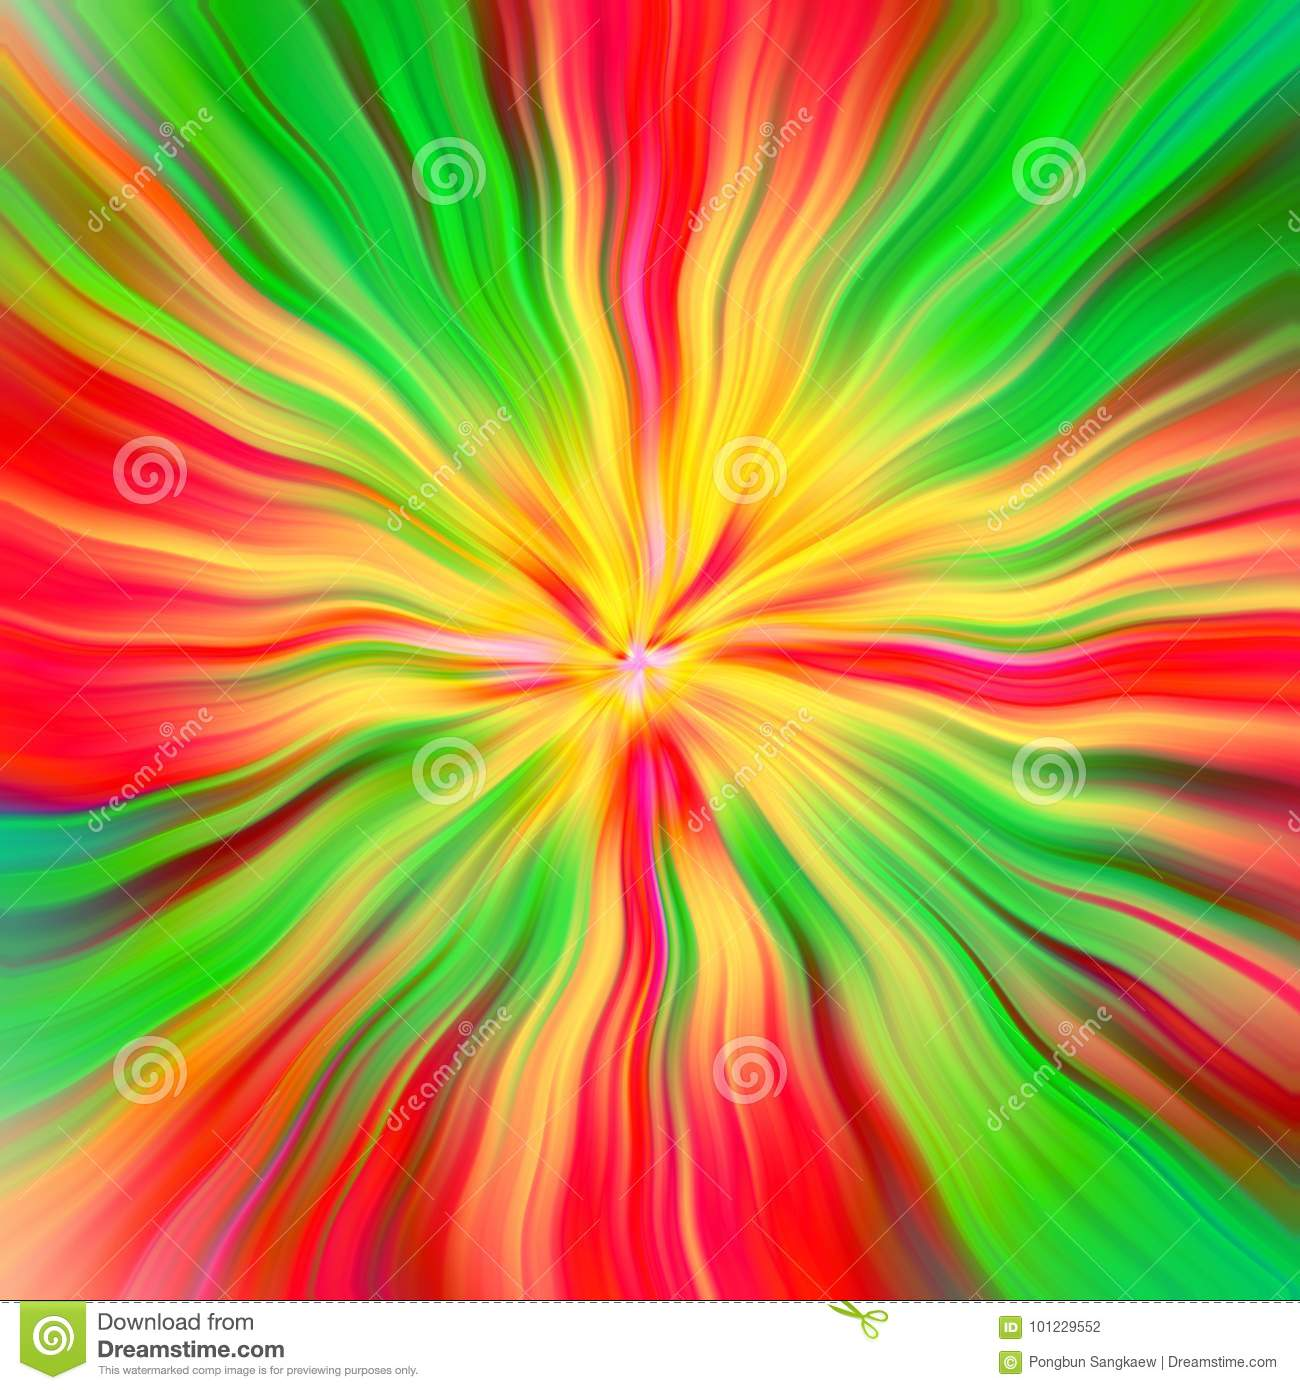 reggae rasta abstract music sign background stock illustration